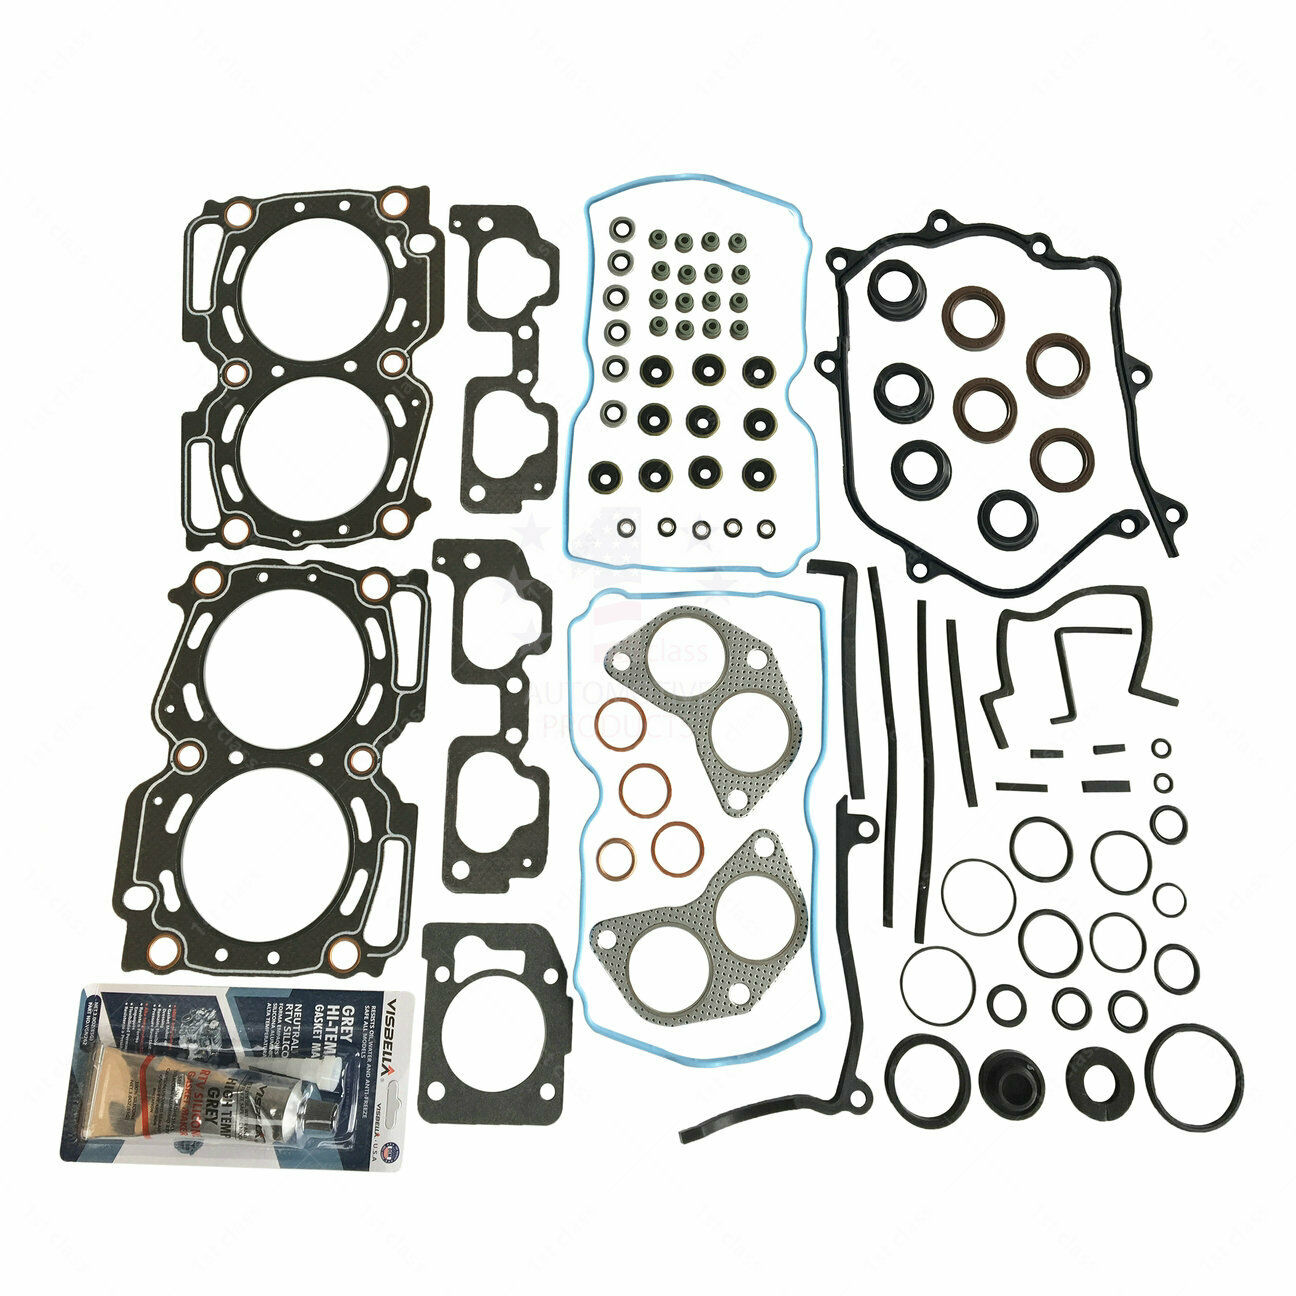 Head Gasket Set For 99 03 Subaru Legacy Impreza Forester Outback 25 1998 1 Of 2only 5 Available